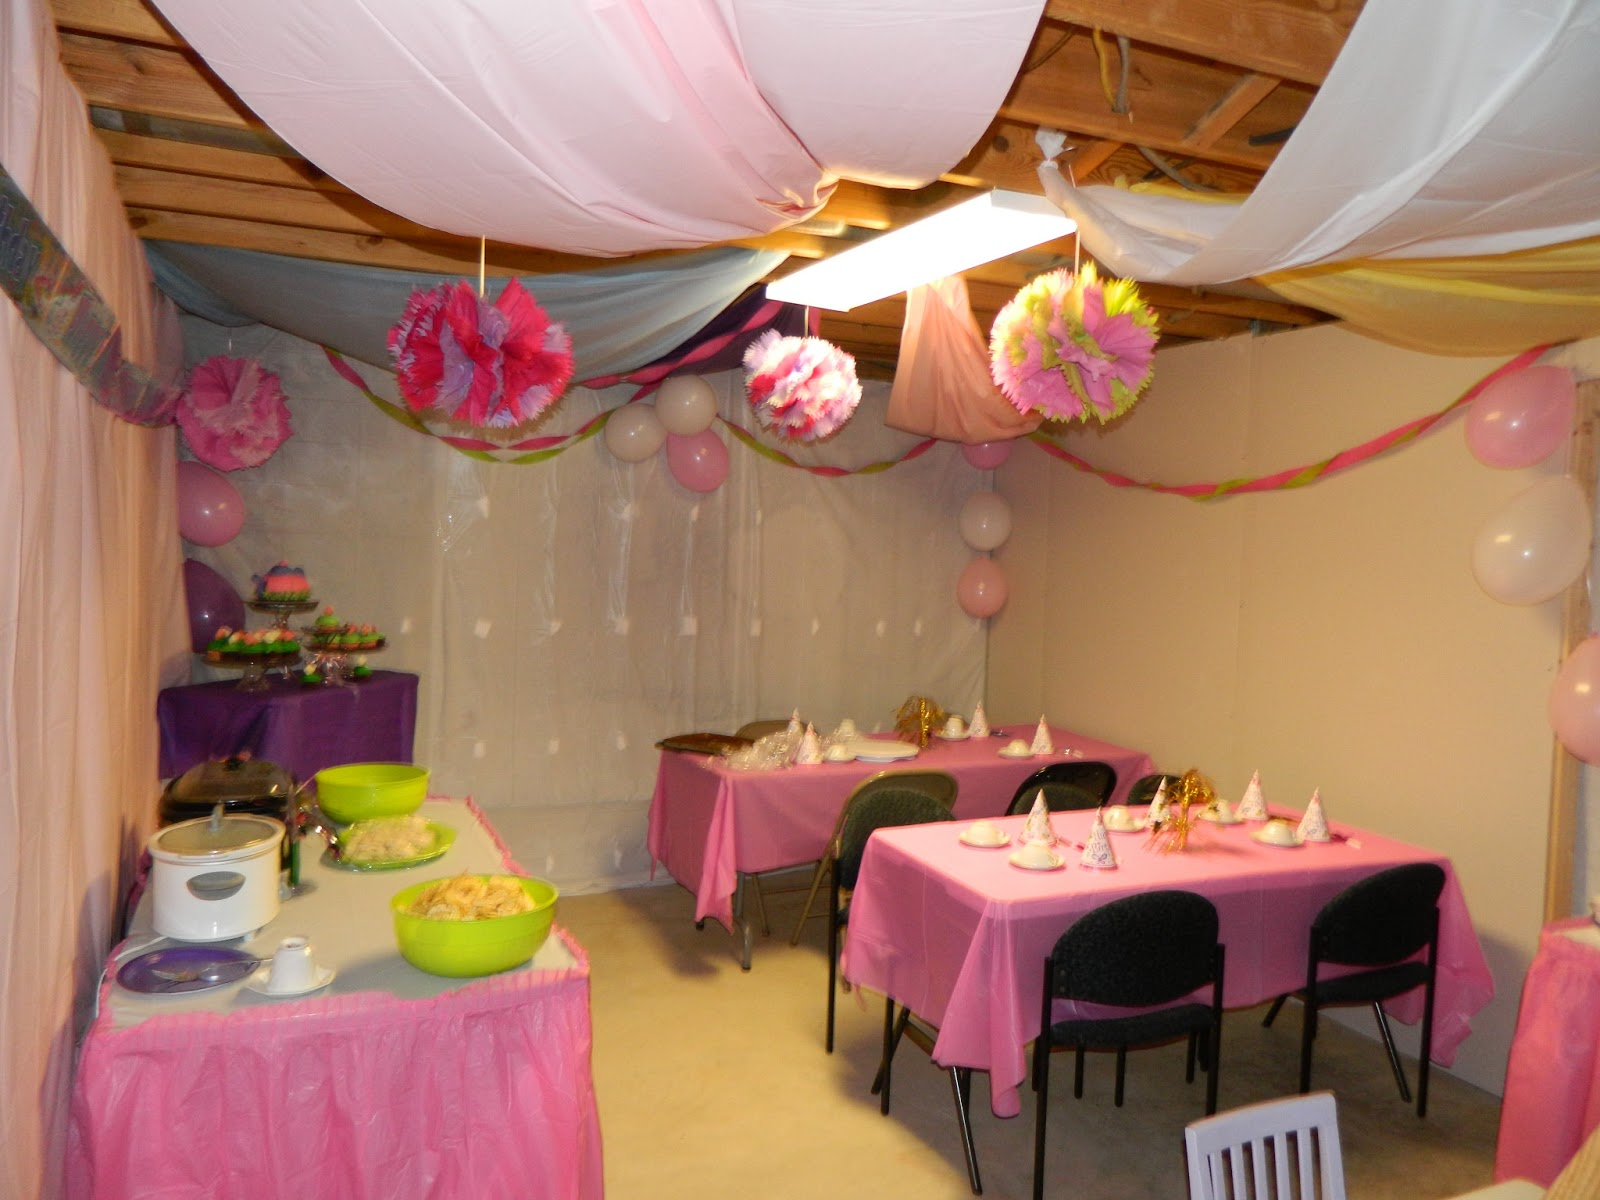 We Used Plastic Tablecloths To Hide The Ugly Gray Concrete Walls Beams Above Our Heads Also Took And Swagged Them